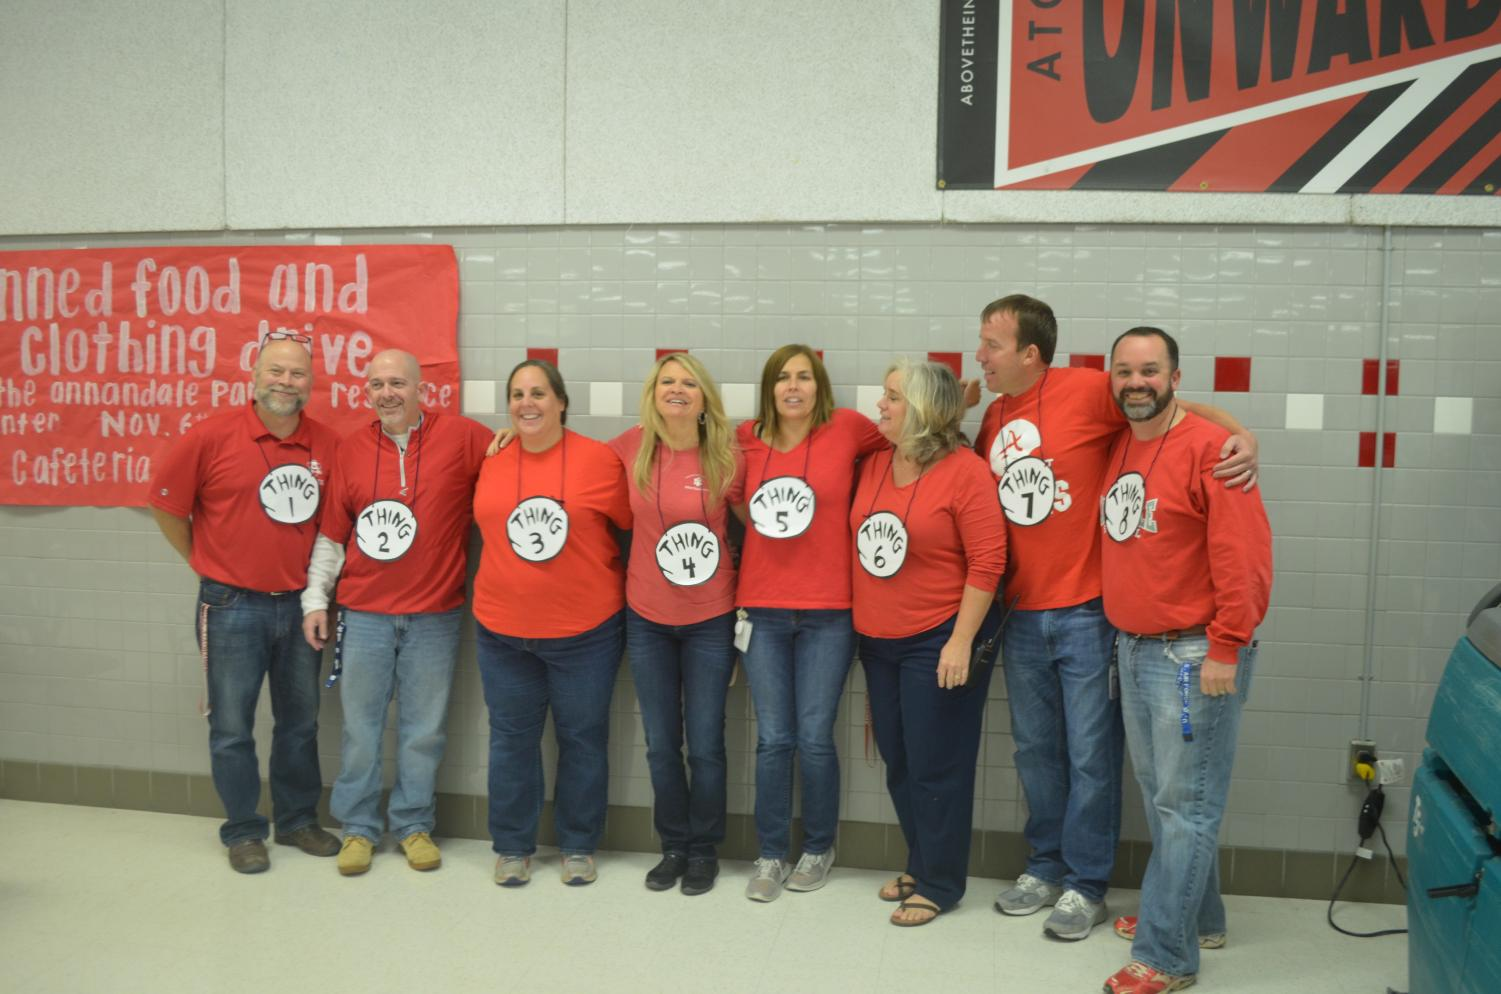 Administrative staff members dressed as Things 1-8 from Dr. Seuss' book, The Cat in the Hat for last year's contest